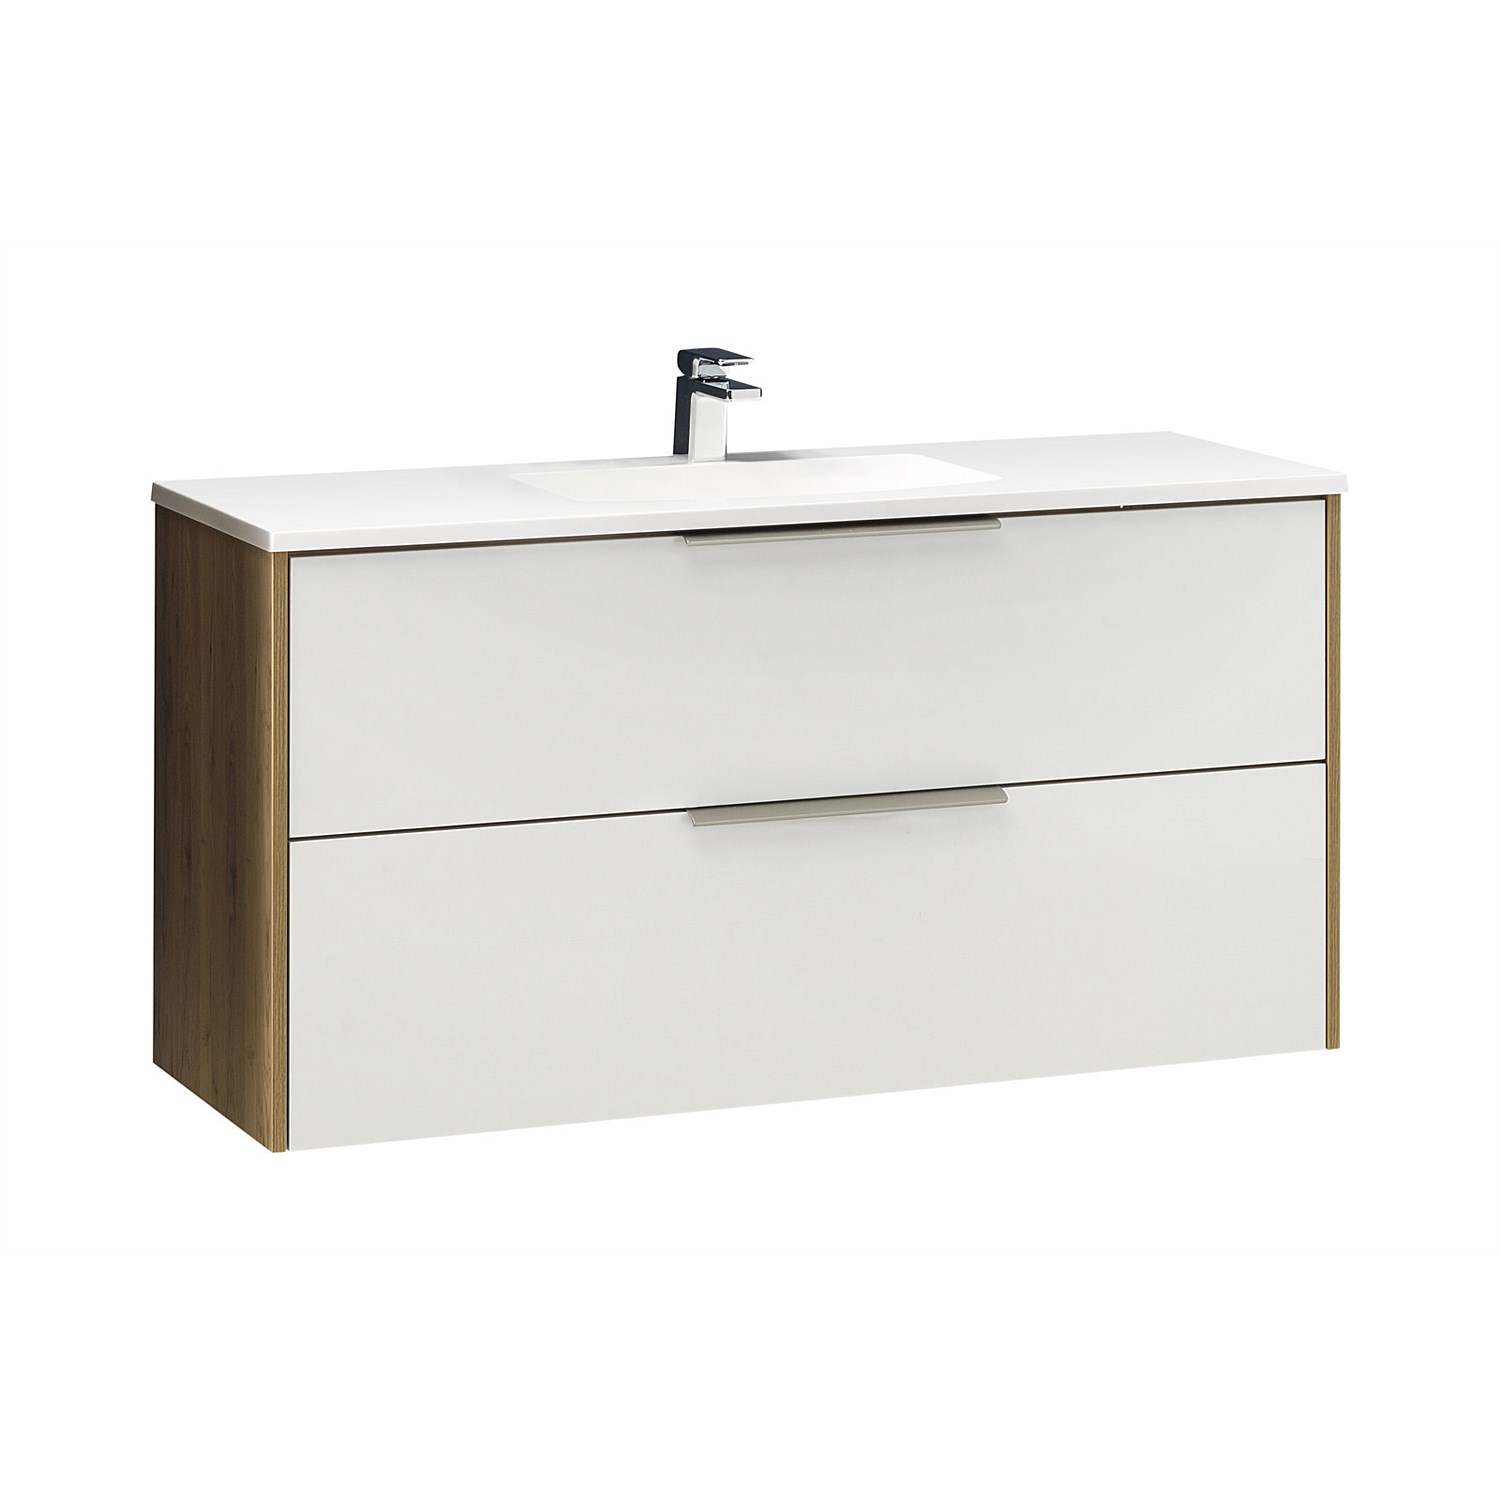 1200mm Bathroom Vanity Vanities And Storage Clearlite Nikau 1200mm Vanity